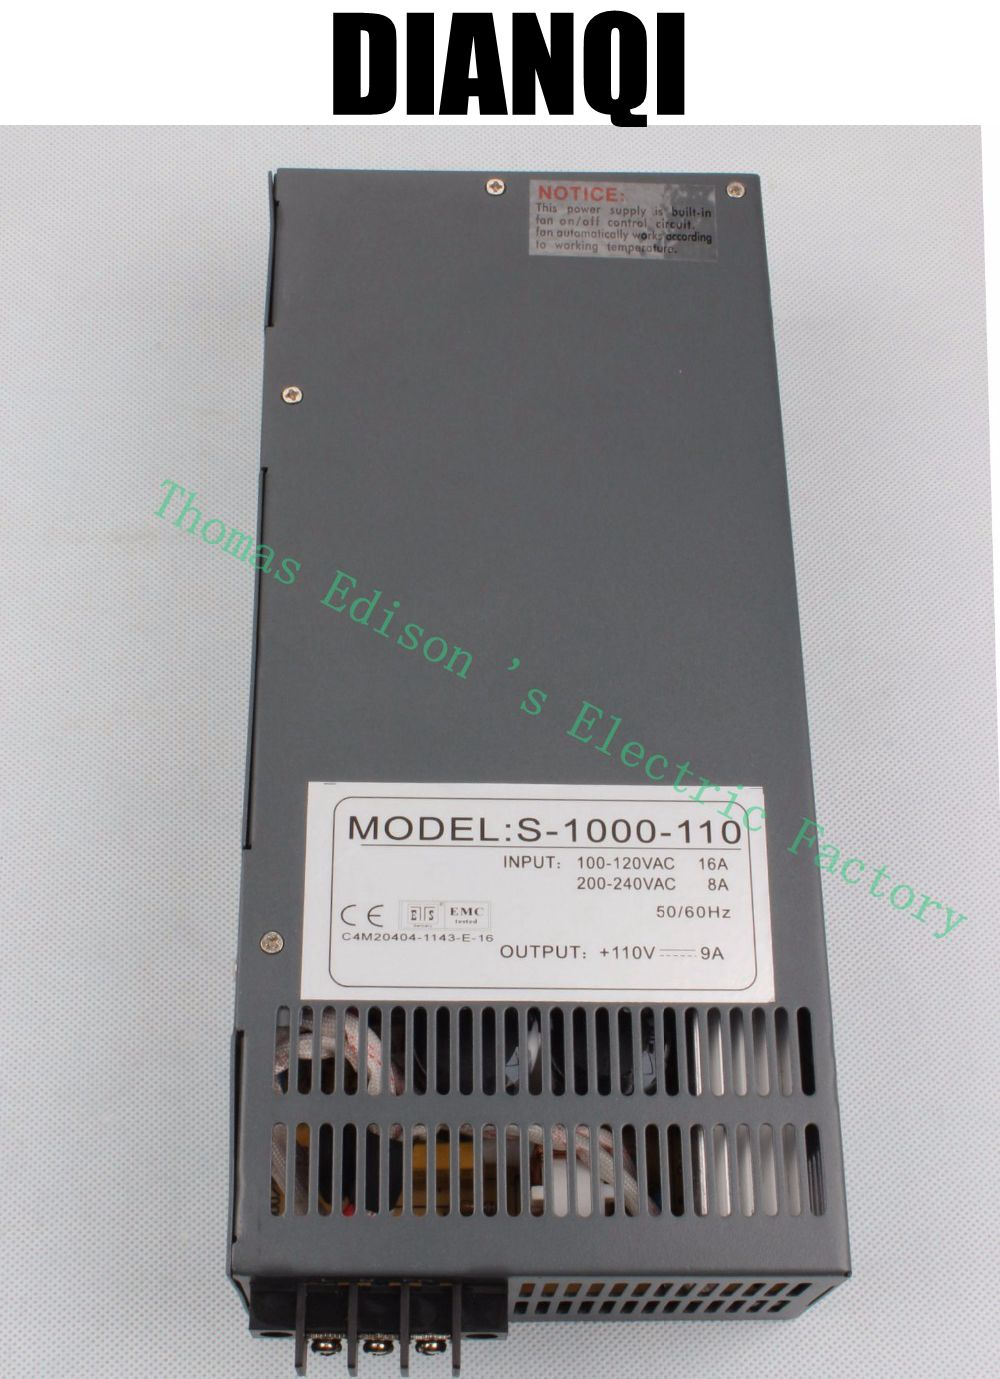 1000W 110V 9a Switching power supply AC to DC input 110v or 220v select by switch 1000w ac to dc power supply S-1000-110 111V